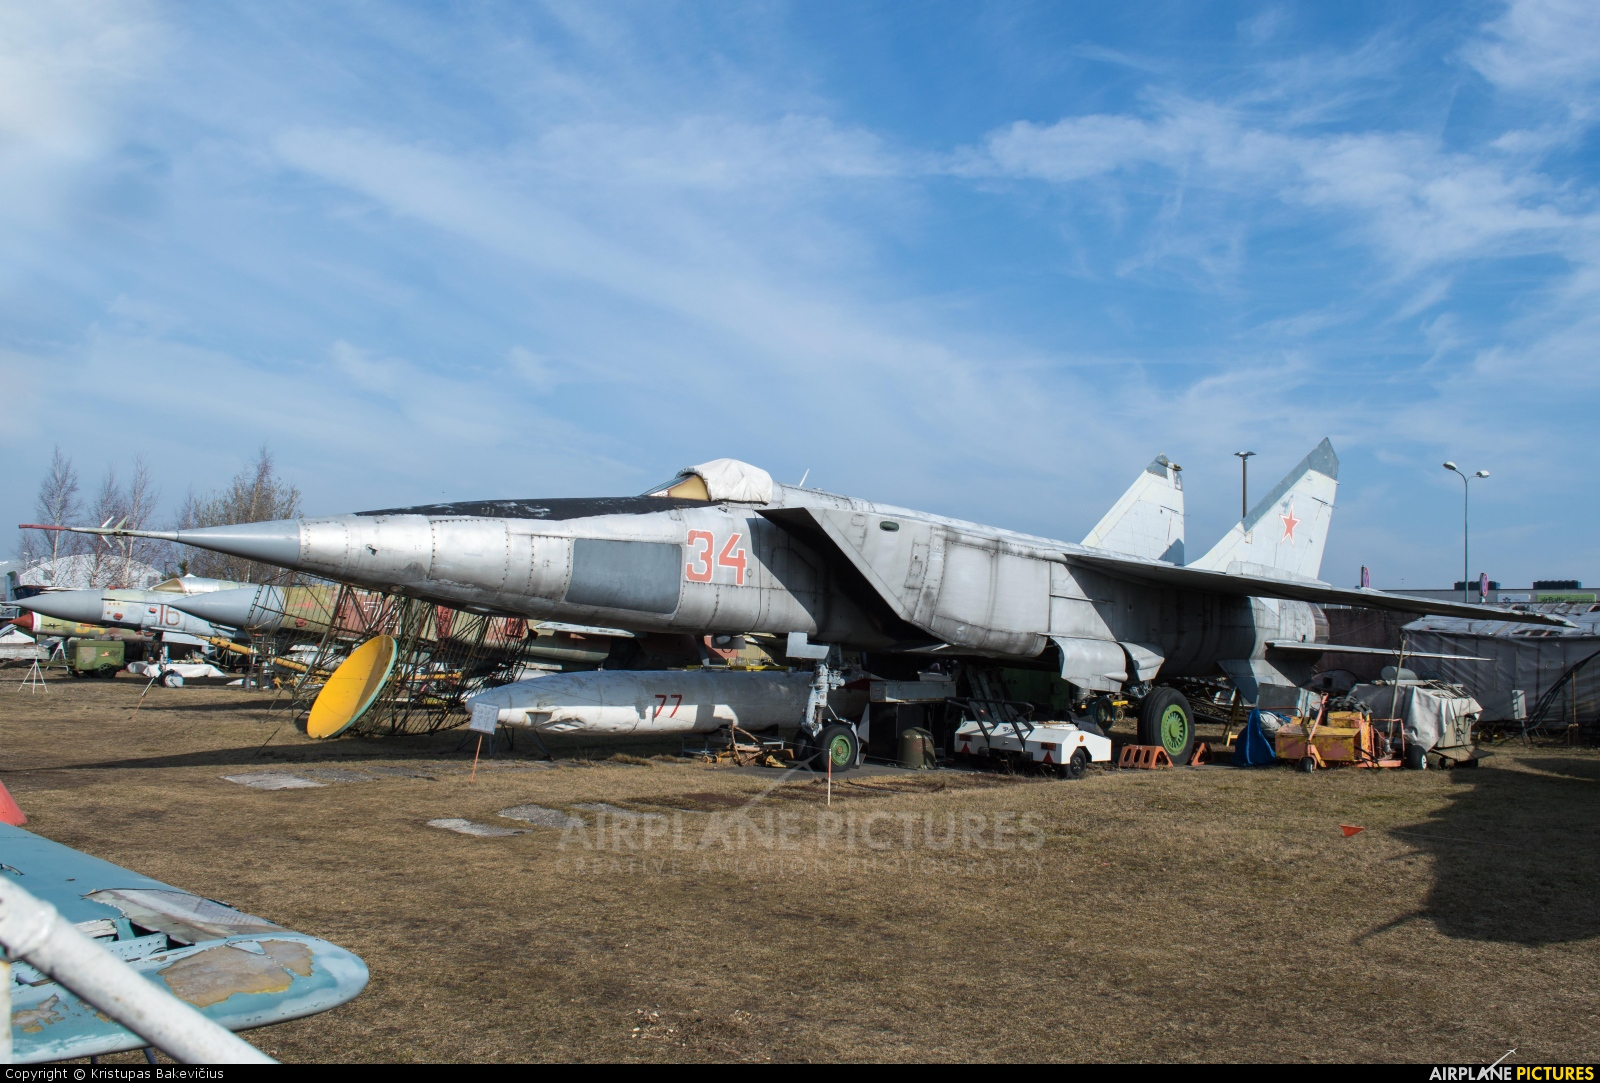 Russia - Air Force 34 aircraft at Riga Aviation Museum